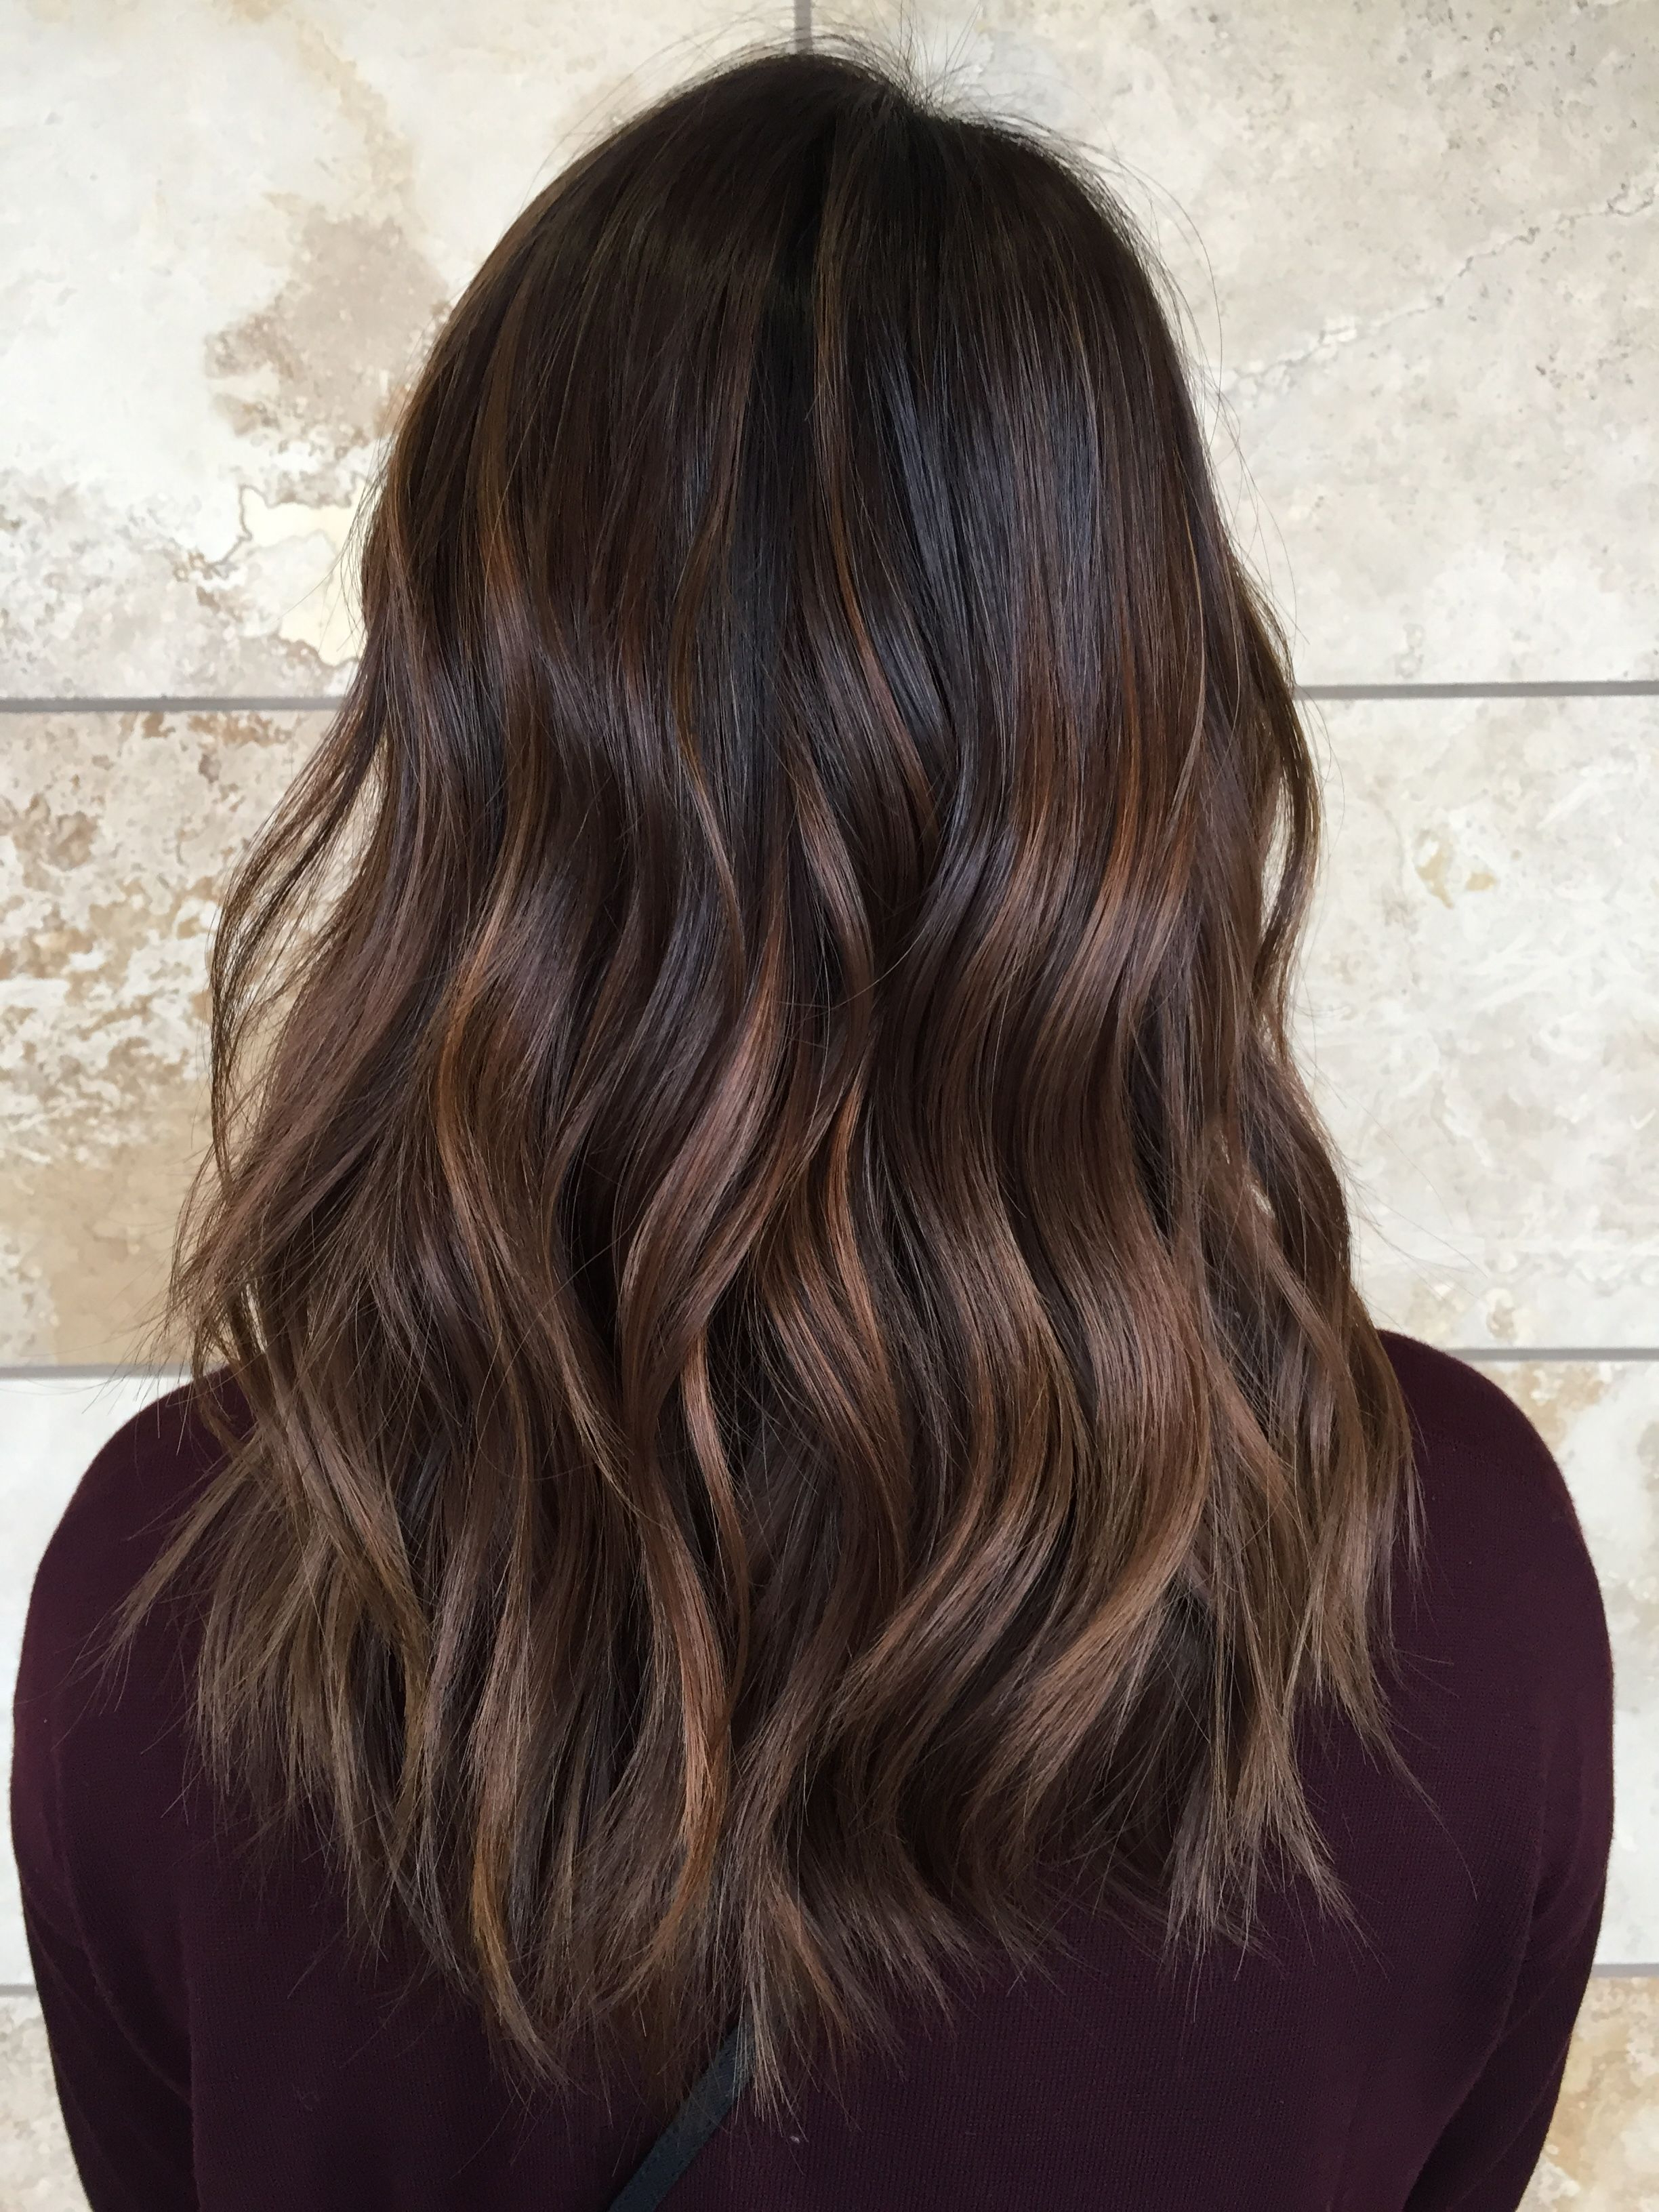 Balayage Hair, Balayage In Well Liked Soft Ombre Waves Hairstyles For Asian Hair (View 5 of 20)